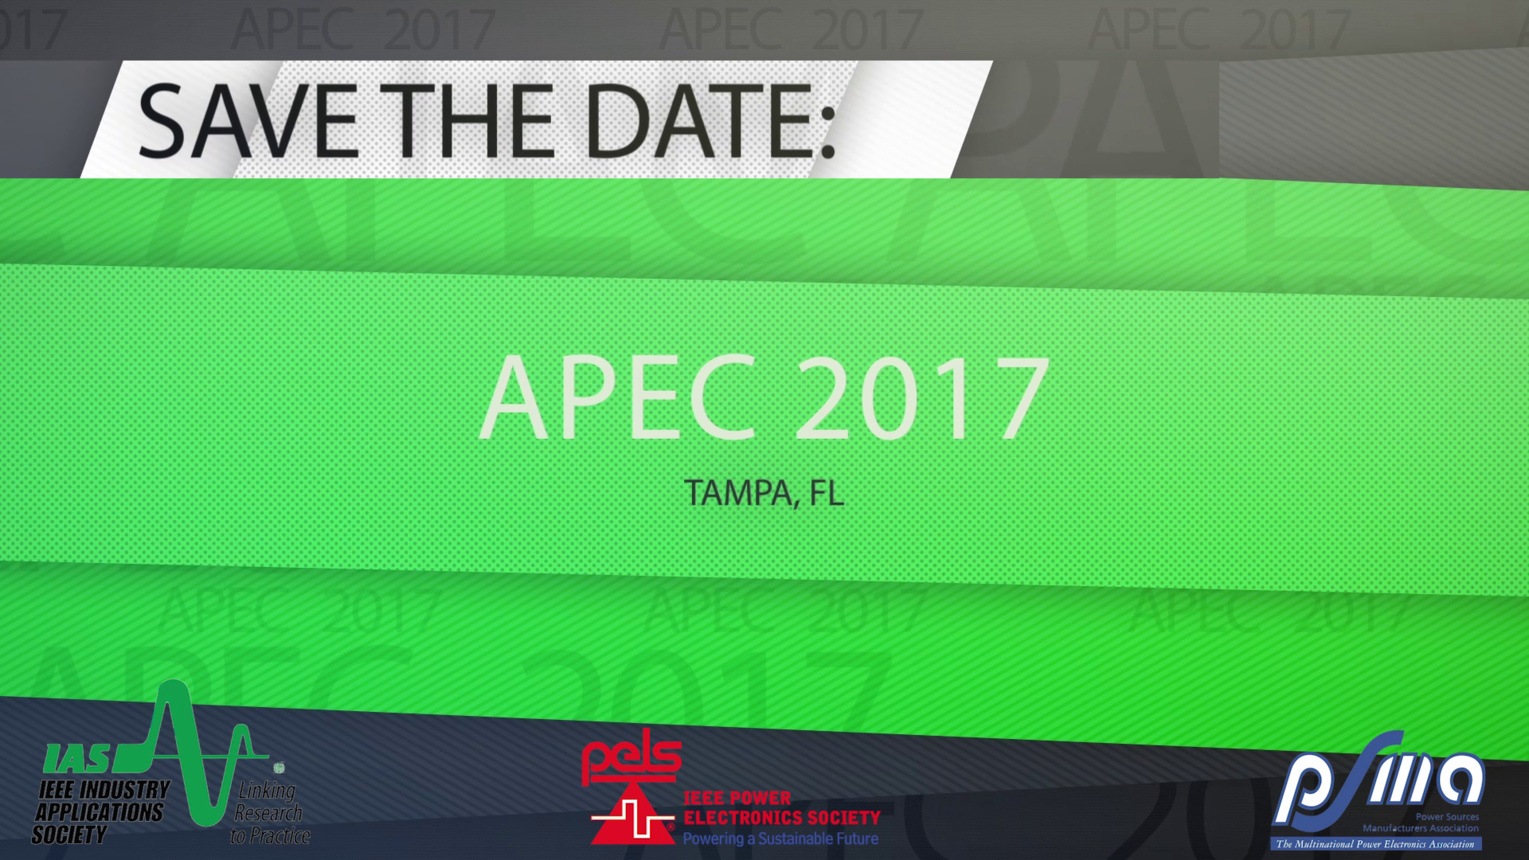 APEC 2017 in Tampa, Florida: Save the Date